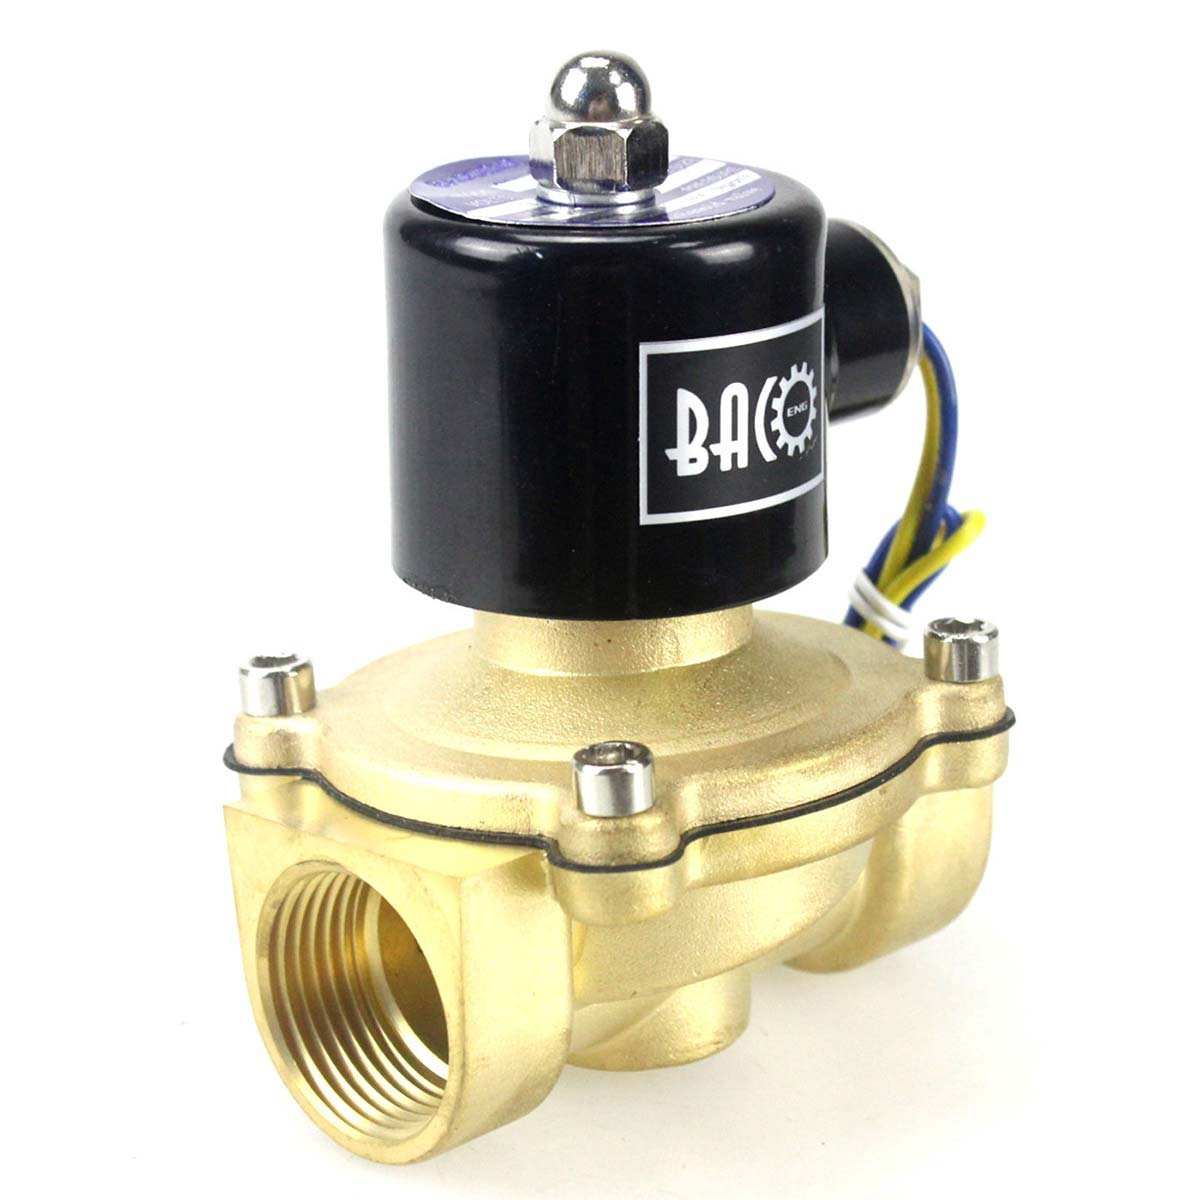 BACOENG 1'' DC12V Electric Solenoid Valve (NPT, Brass, Normally Closed)